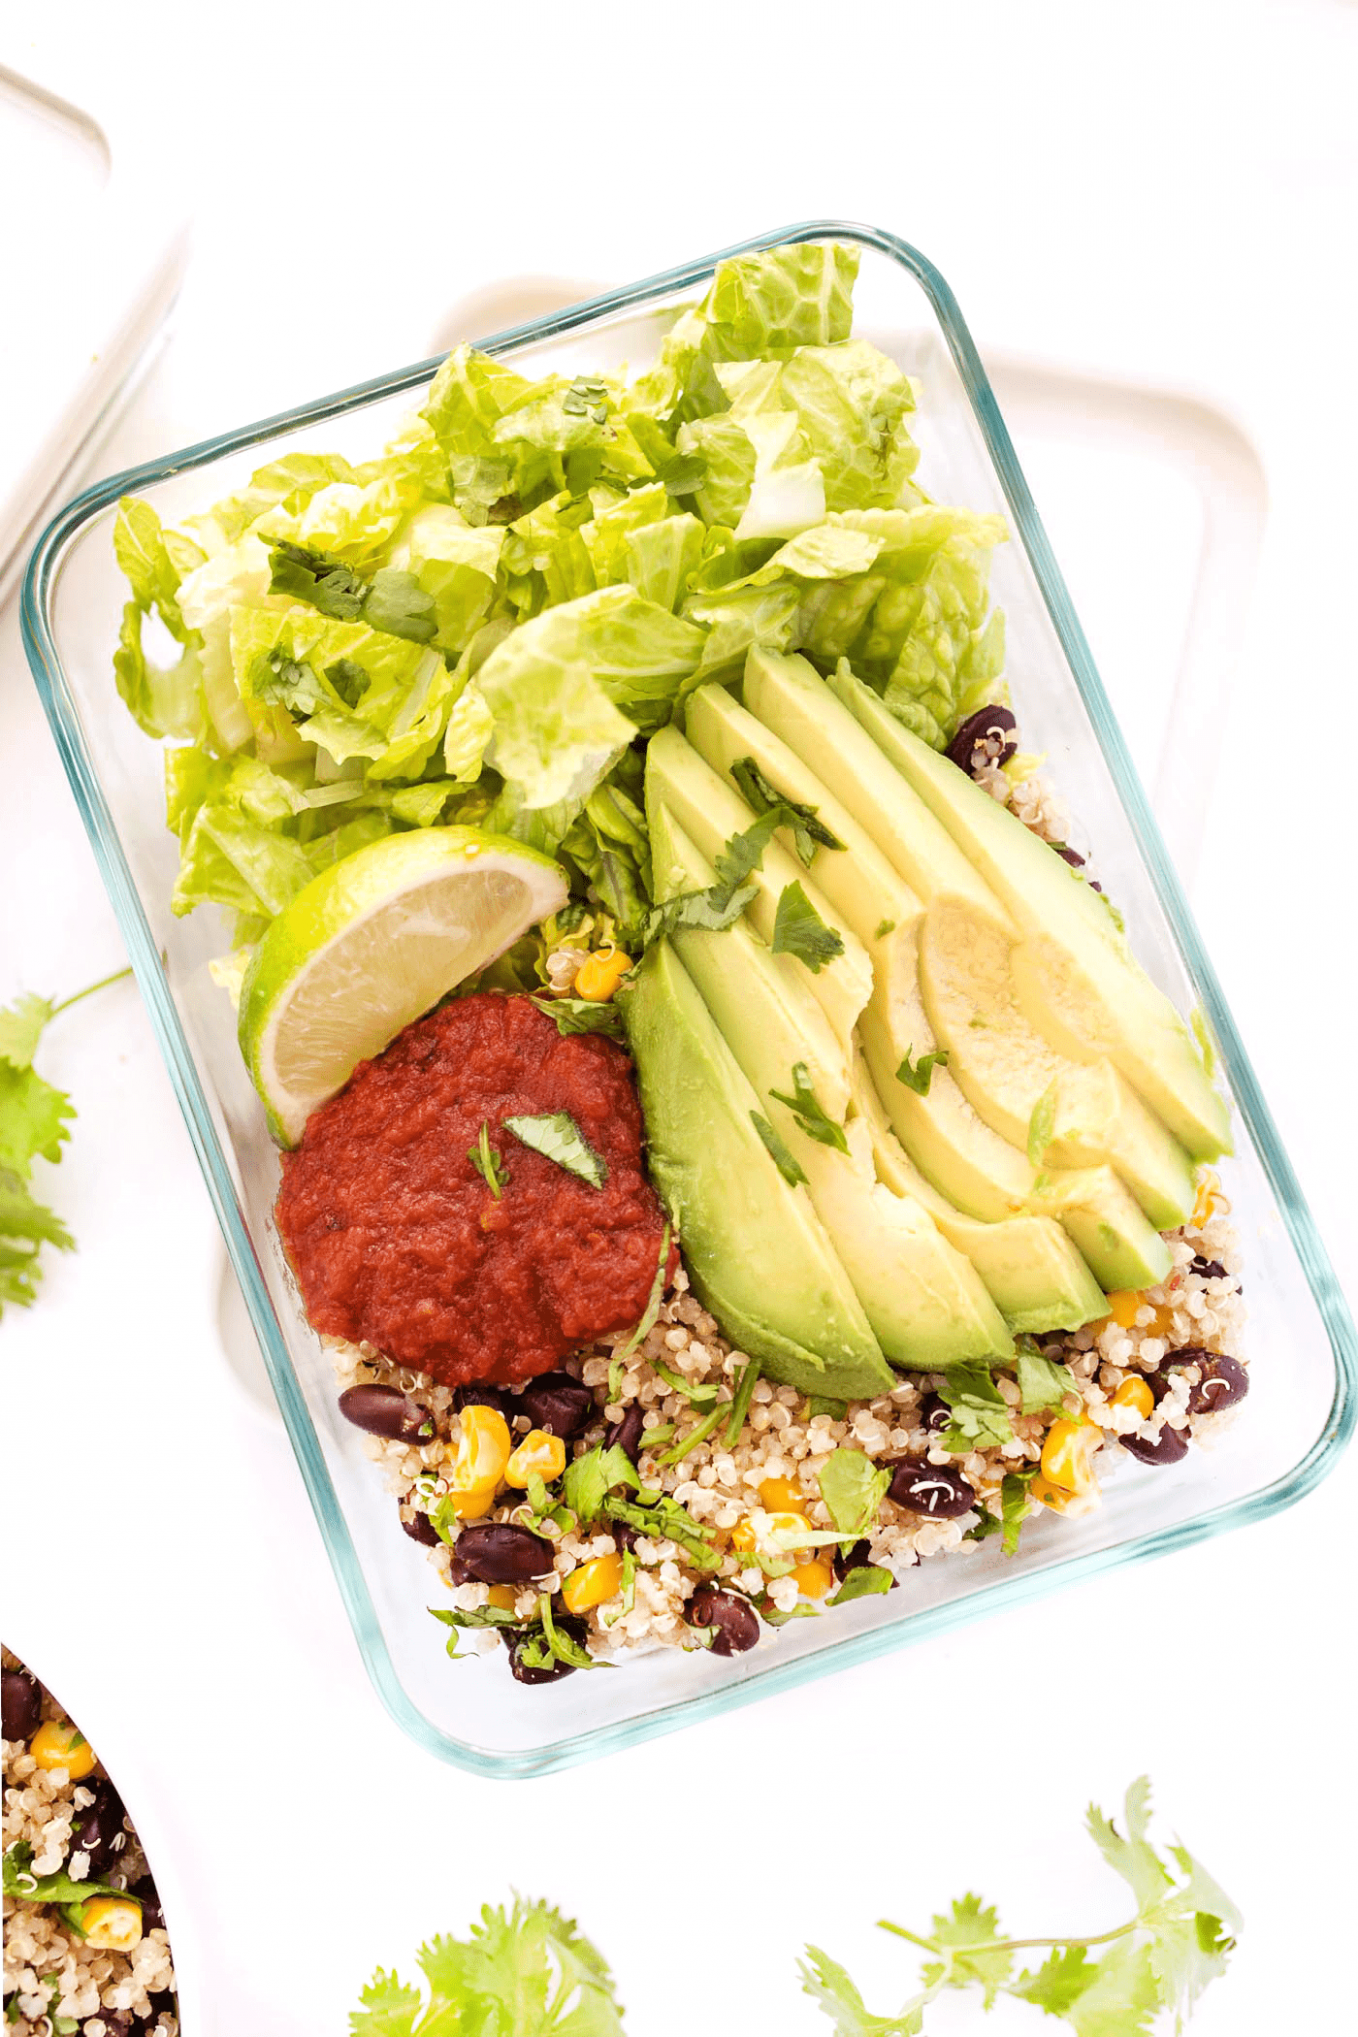 Meal-Prep Vegetarian Quinoa Burrito Bowls - Simply Quinoa - recipes vegetarian meal prep